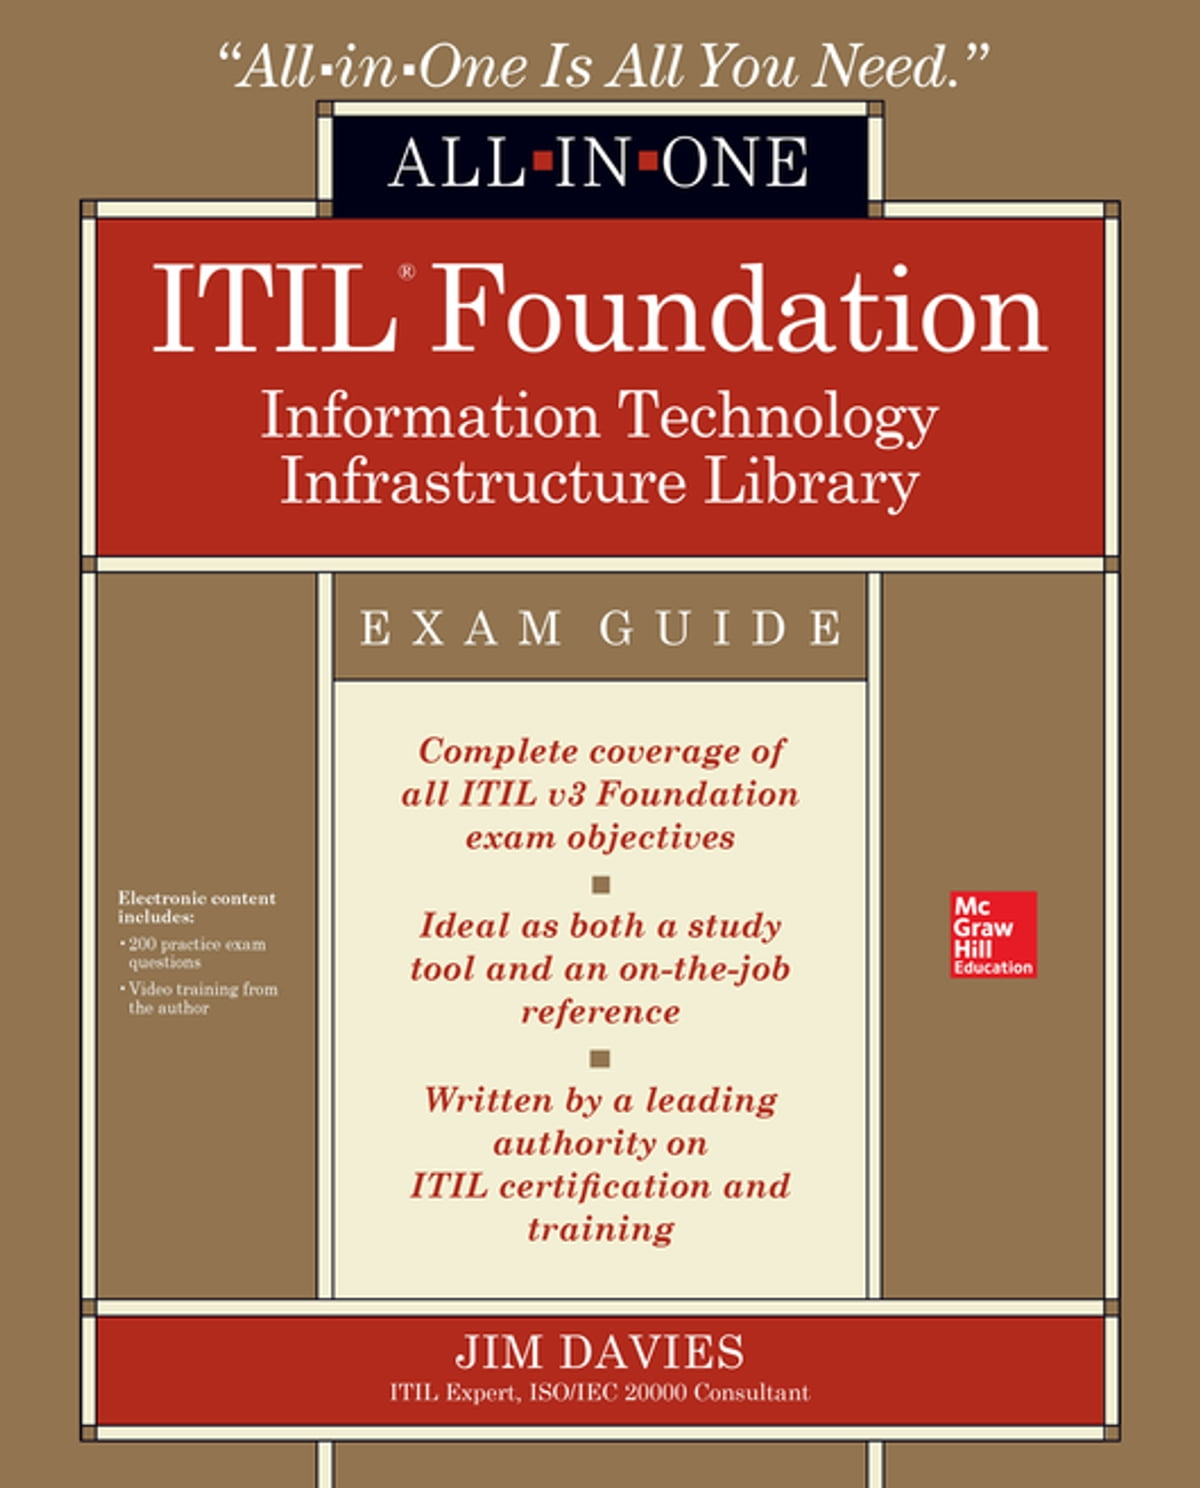 Itil foundation all in one exam guide ebook by jim davies itil foundation all in one exam guide ebook by jim davies 9780071842136 rakuten kobo xflitez Choice Image